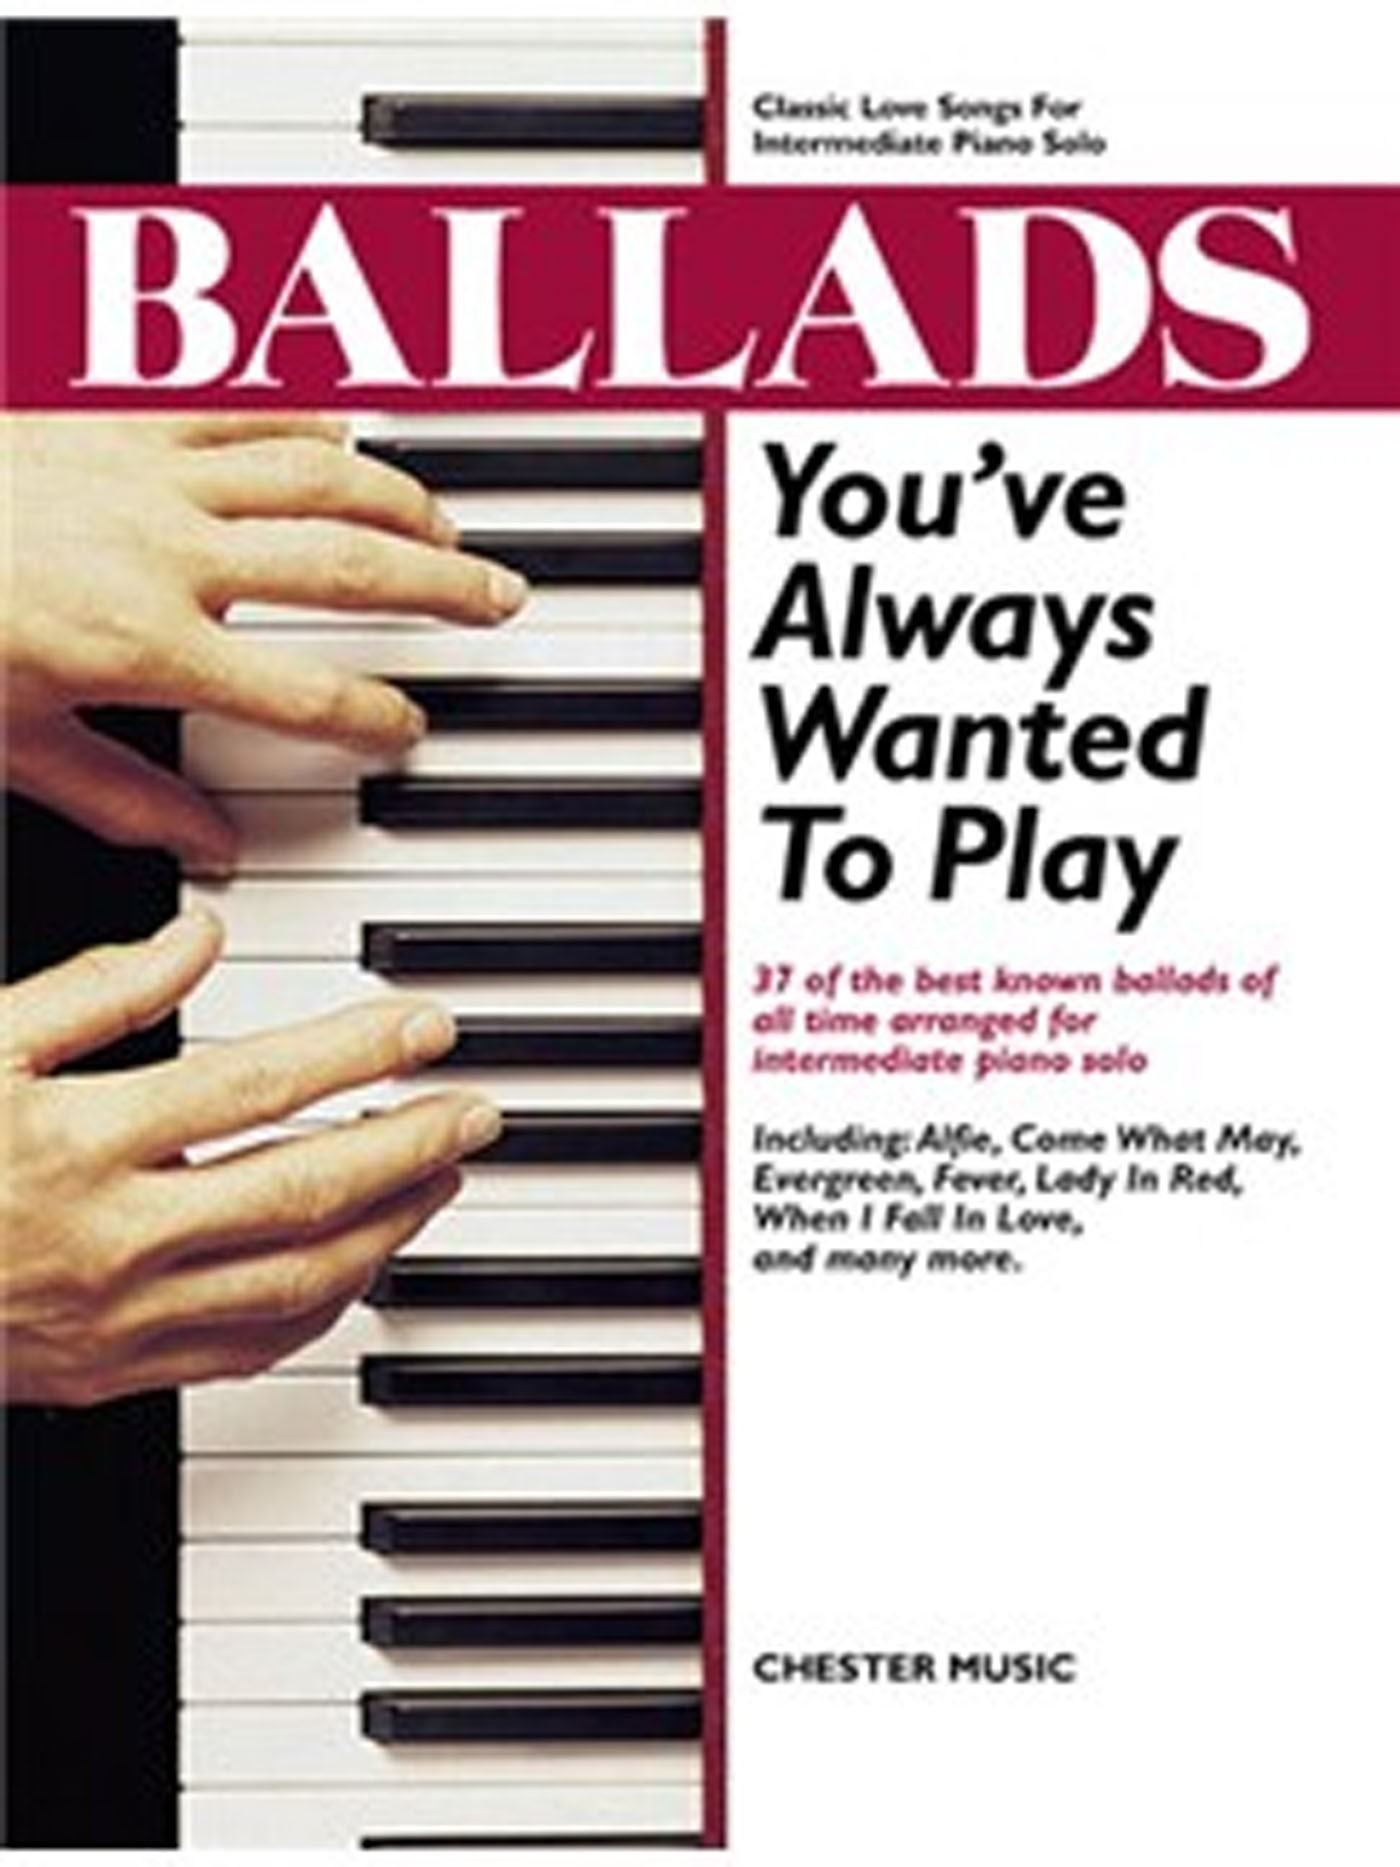 Ballads You've Always Wanted To Play Classic Love Songs Piano Solos Book S04